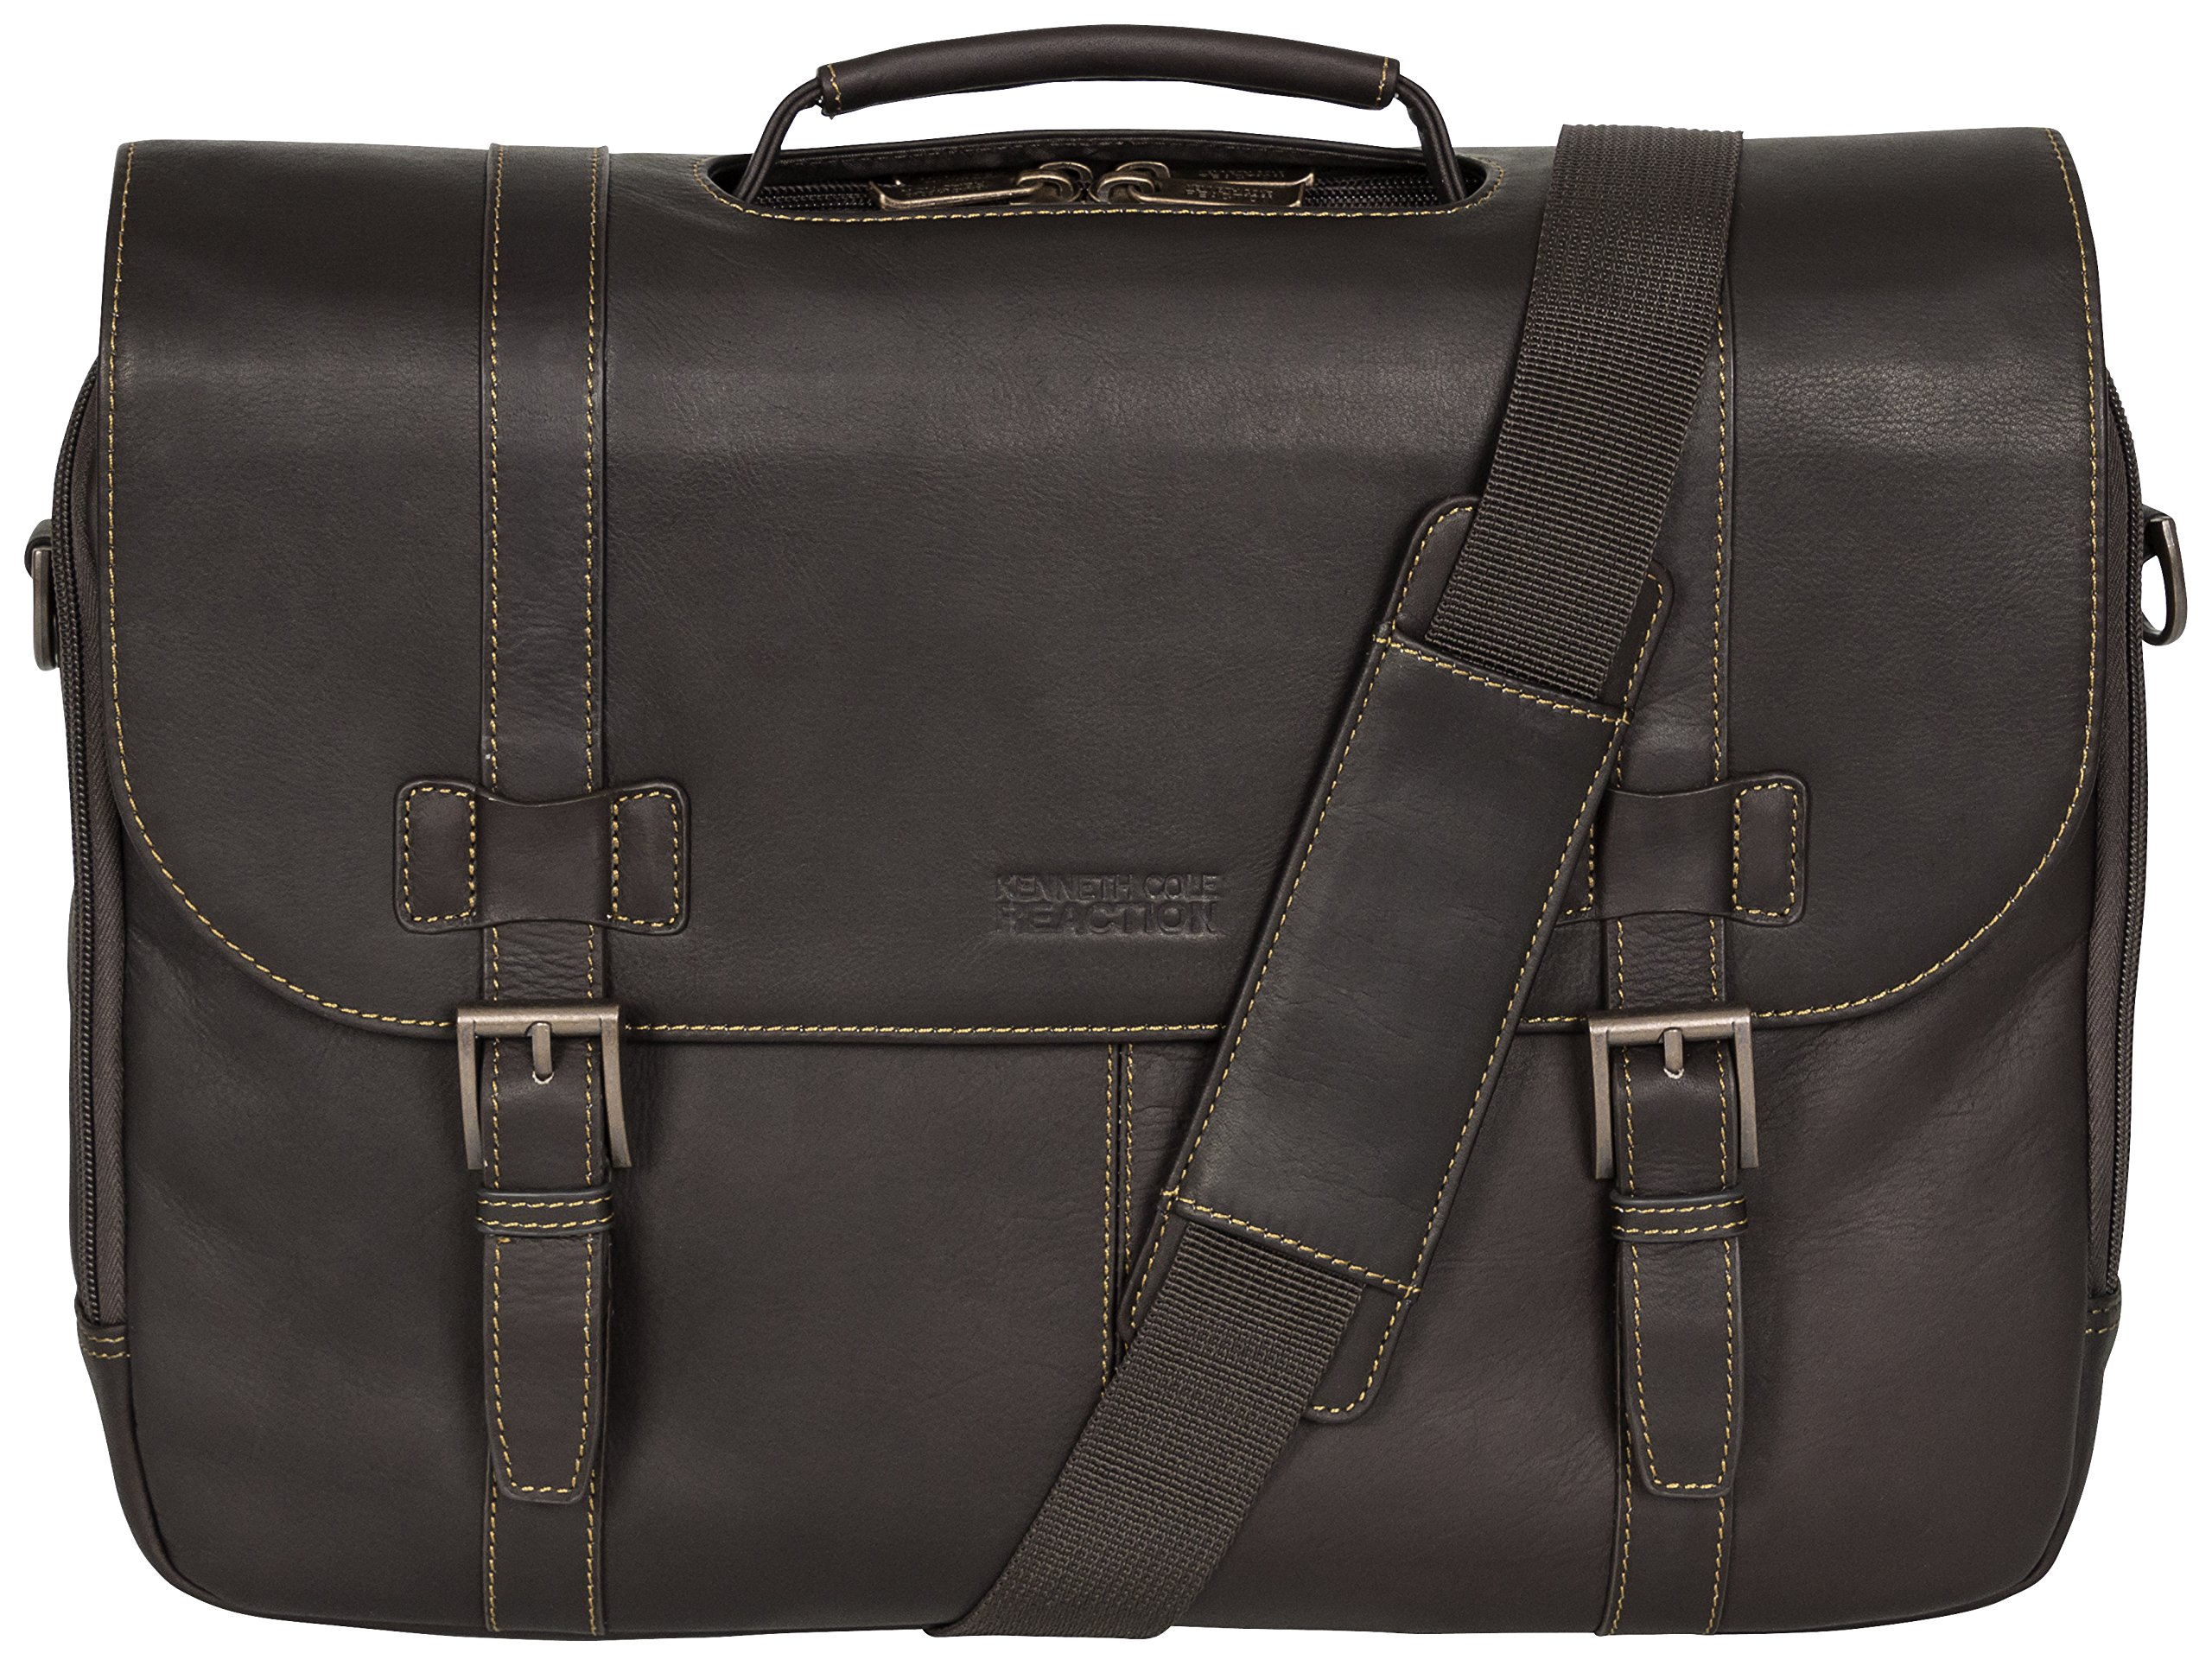 Kenneth Cole Reaction ''Show Business'' Colombian Leather Double Compartment Flapover Portfolio/Computer Case With Pull Through Handle/ Fits Most  15.4'' Laptops, Brown, One Size by Kenneth Cole REACTION